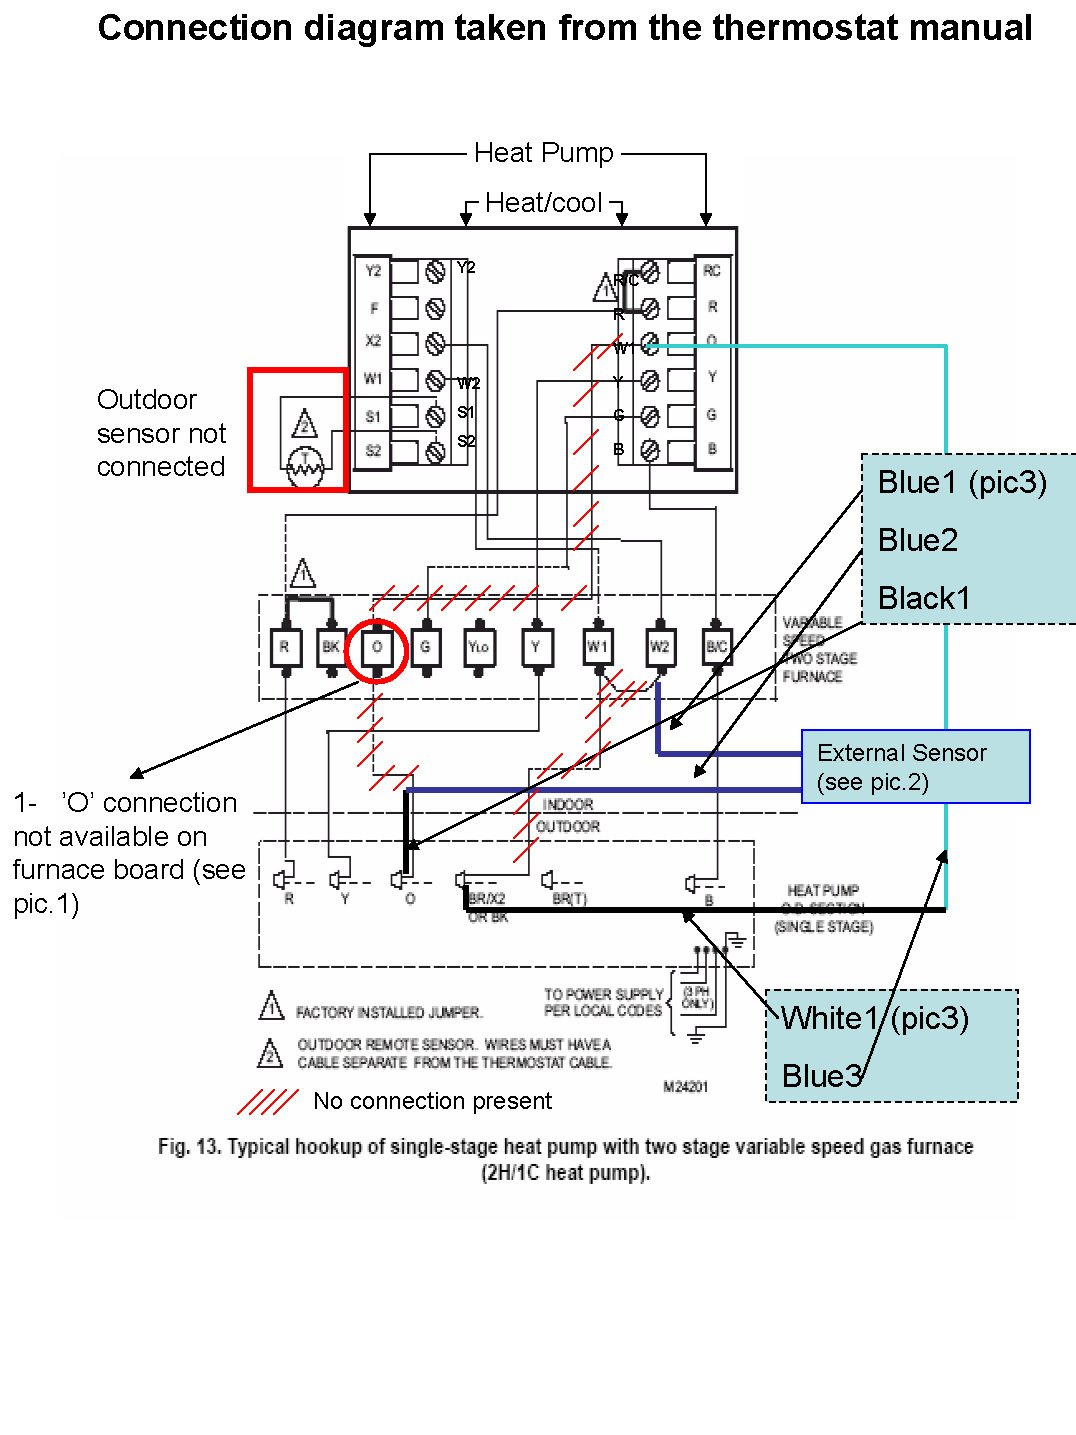 Typical Furnace Wiring Diagram Libraries Hardy Parts Free Download Schematic Payne Thermostat Data Schema